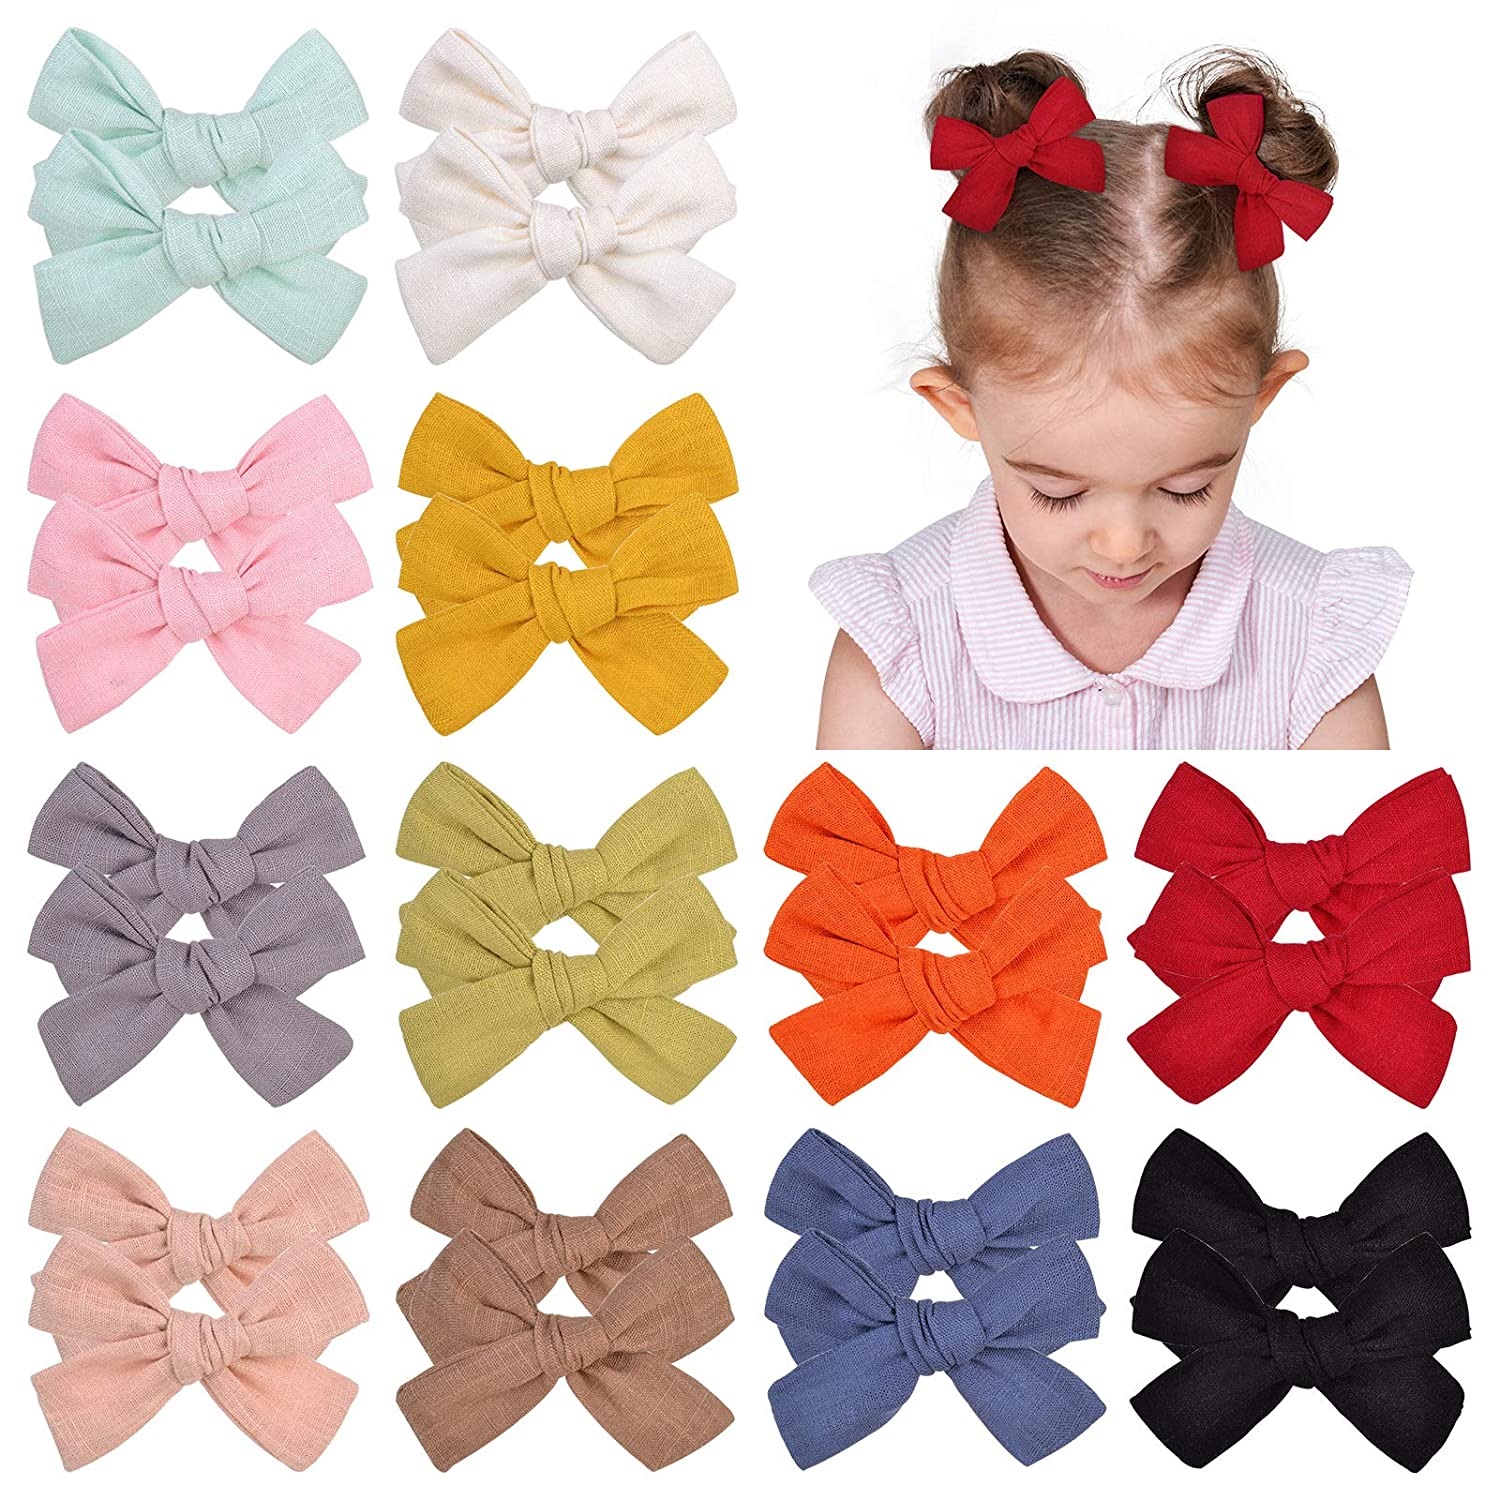 Seattle Mall 24pcs Baby Girls 3.6 Inches Hair Fully Bow Barrettes Seasonal Wrap Introduction Clips Lined